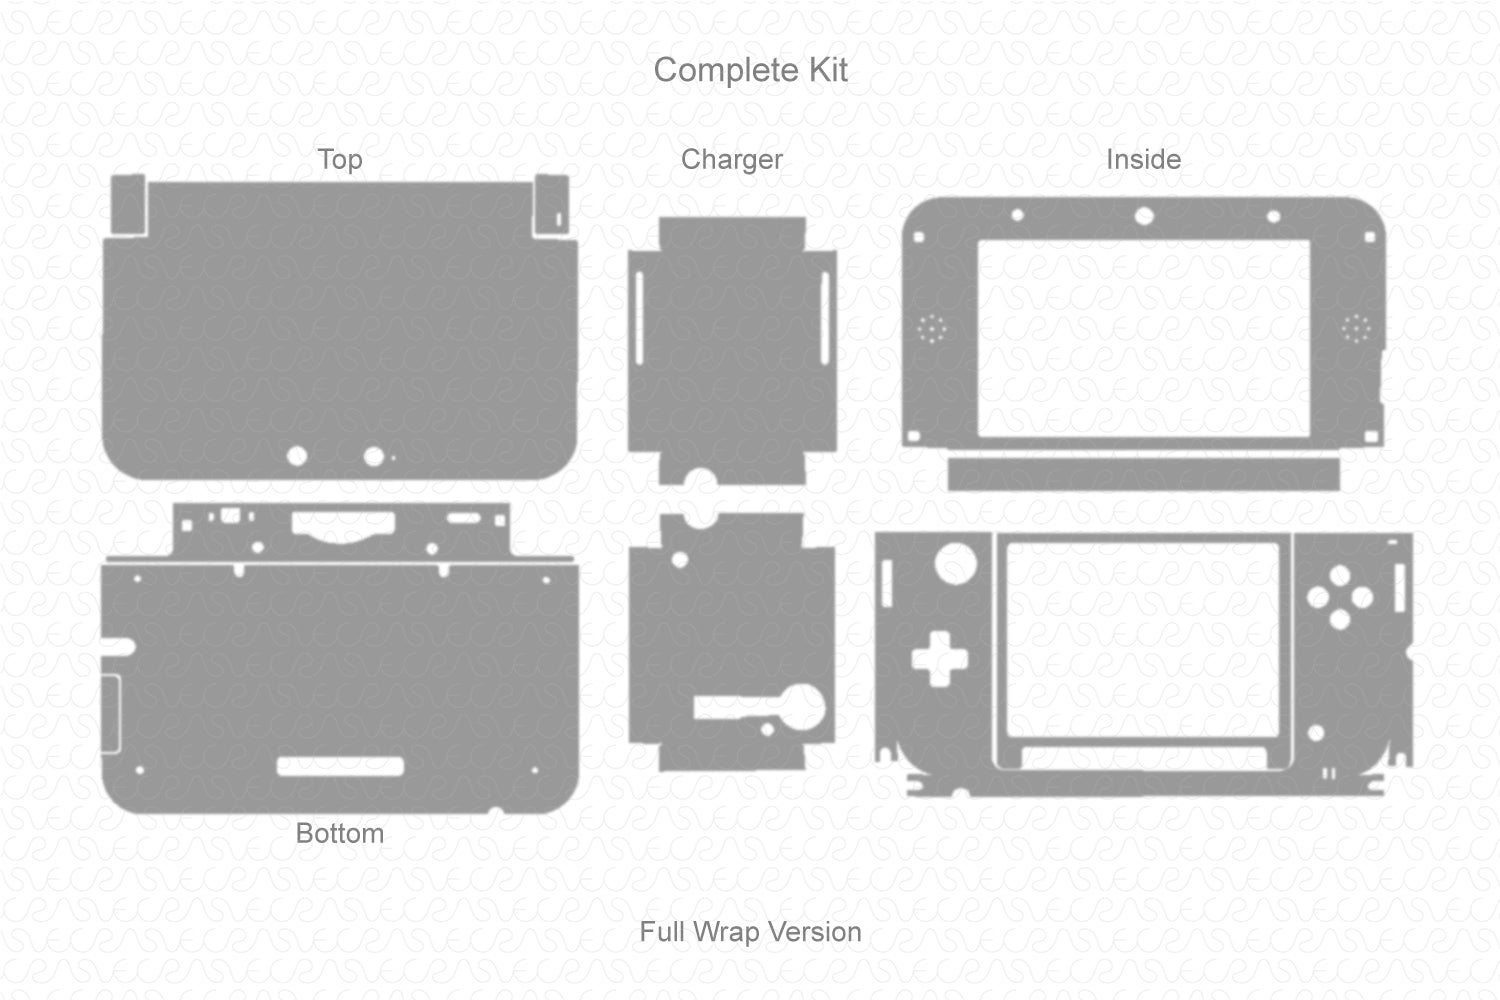 Nintendo 3ds XL (2011) Vector Cut File Template